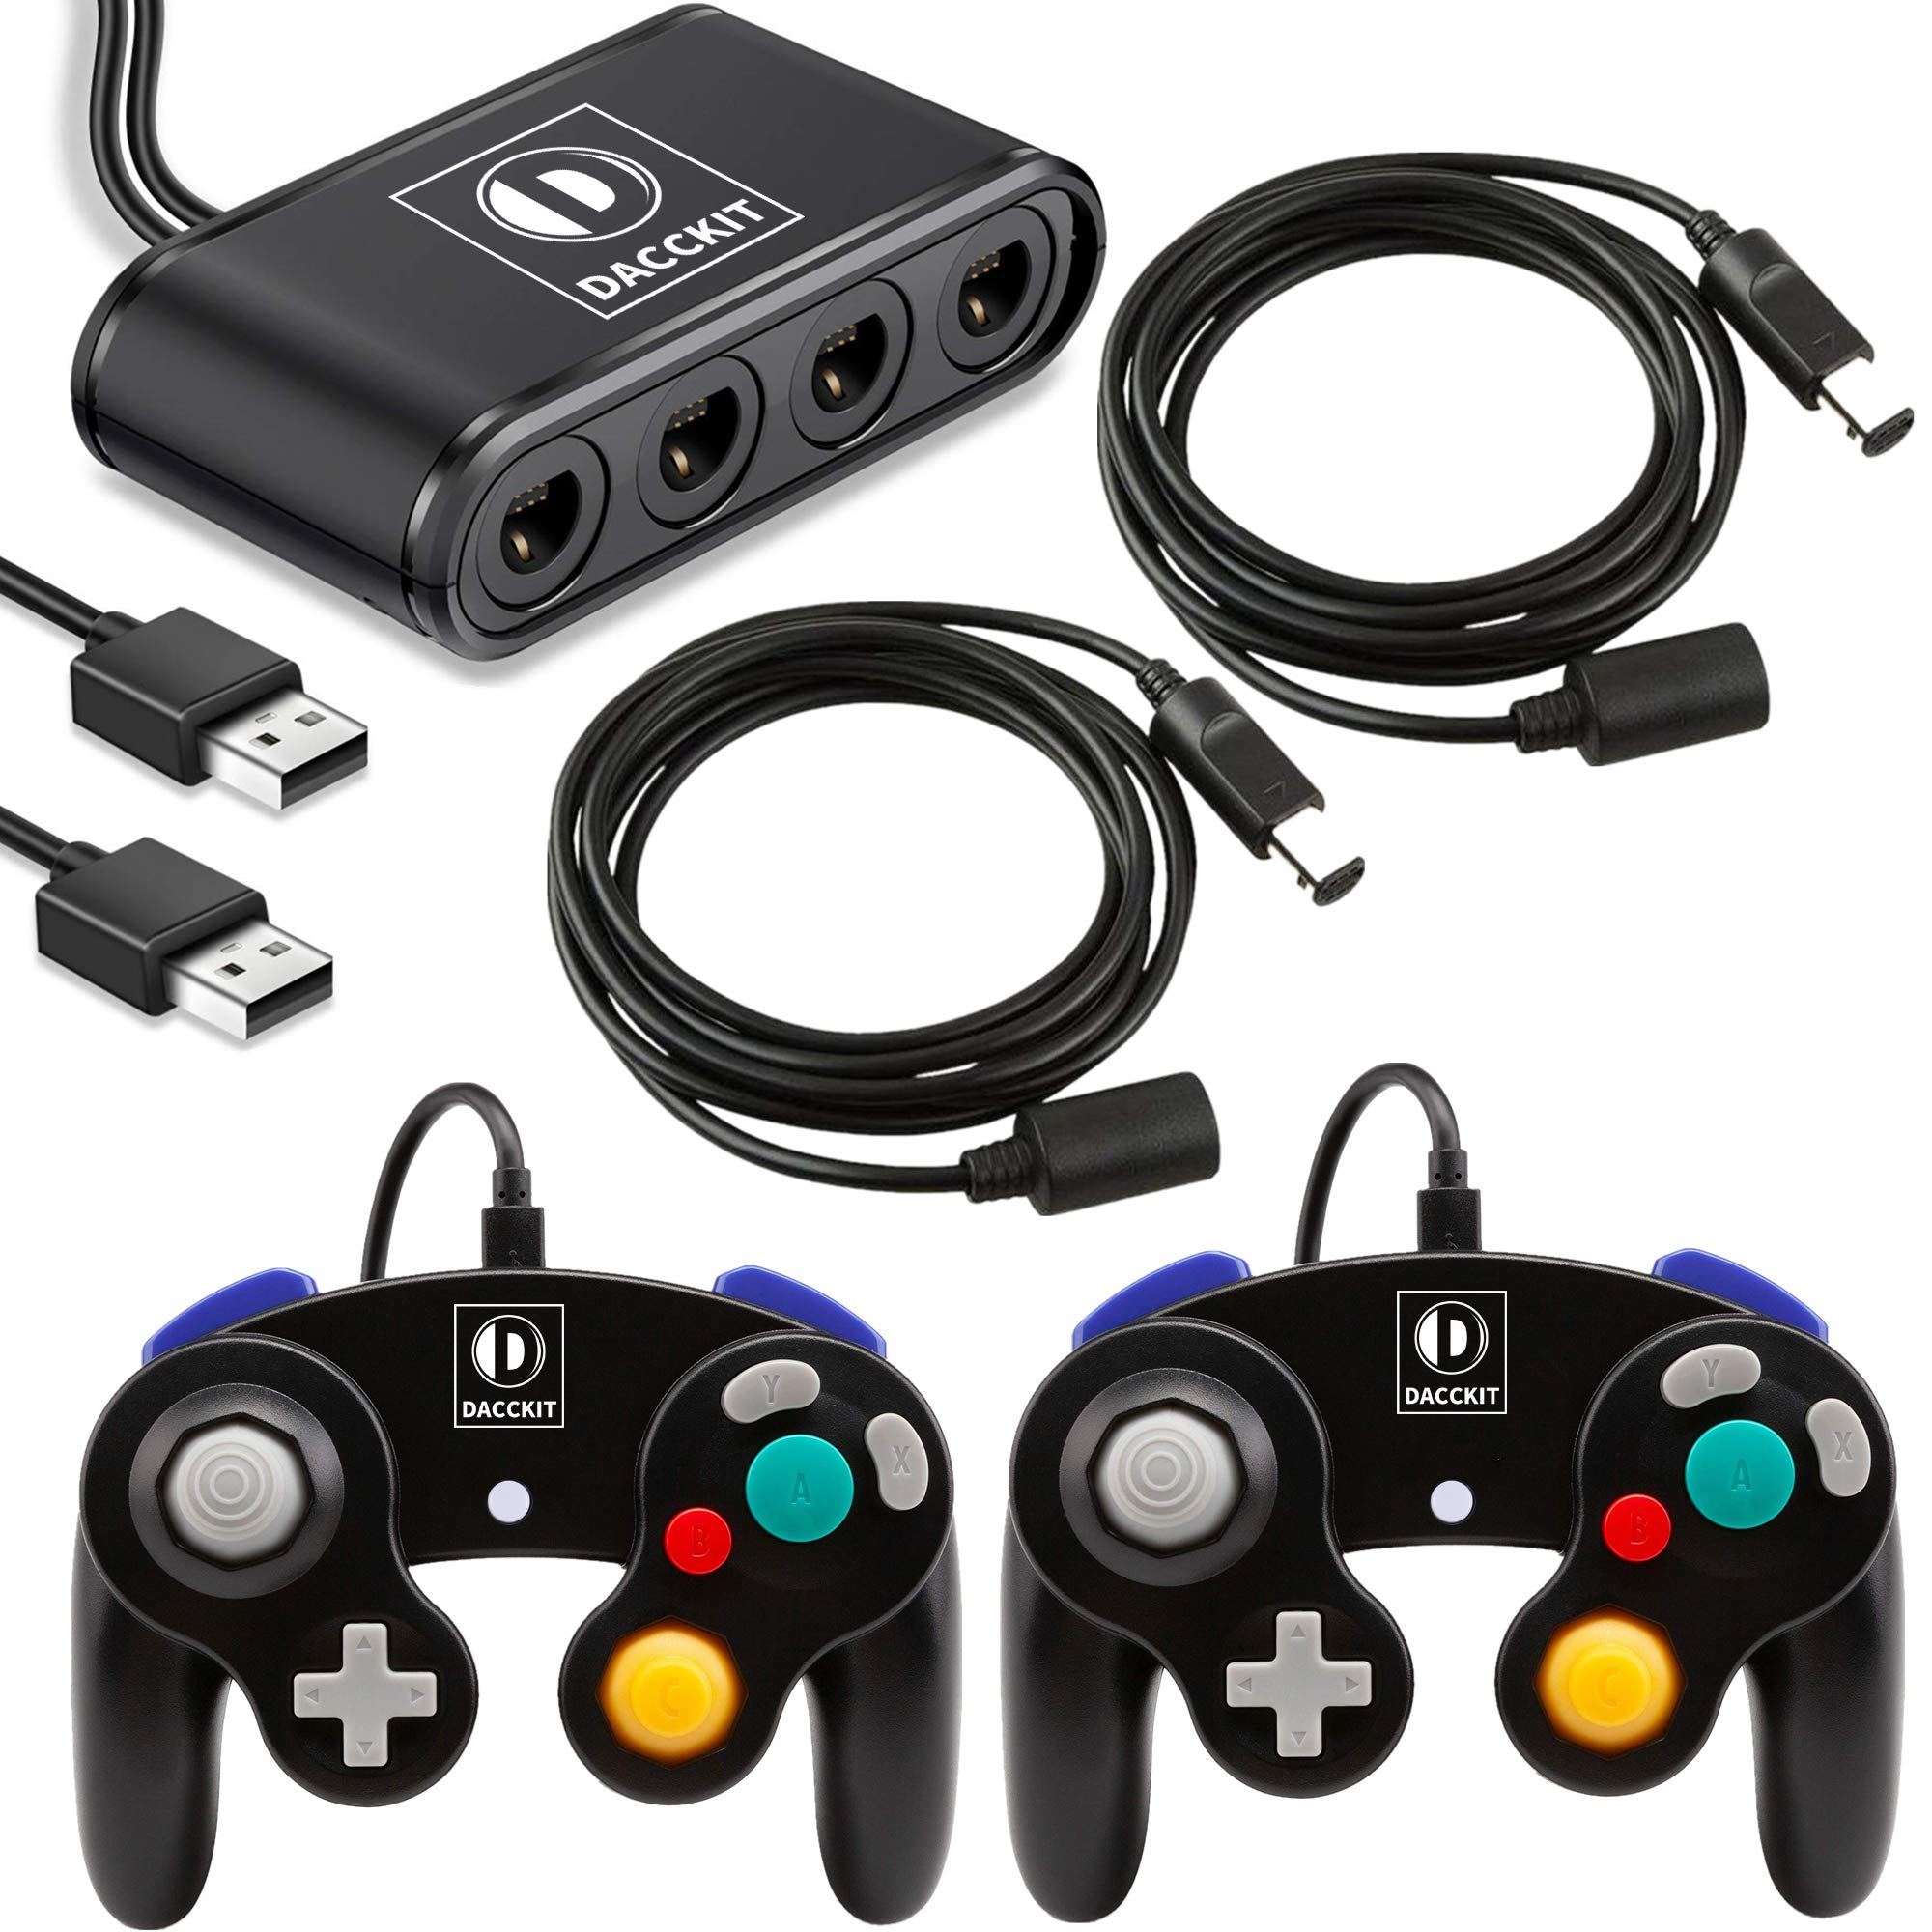 D DACCKIT Gamecube Accessories Bundle Compatible with Switch/Wii U/PC - Includes 2x Gamecube Controllers, 1x Gamecube Controller Adapter, 2x NGC Extension Cords